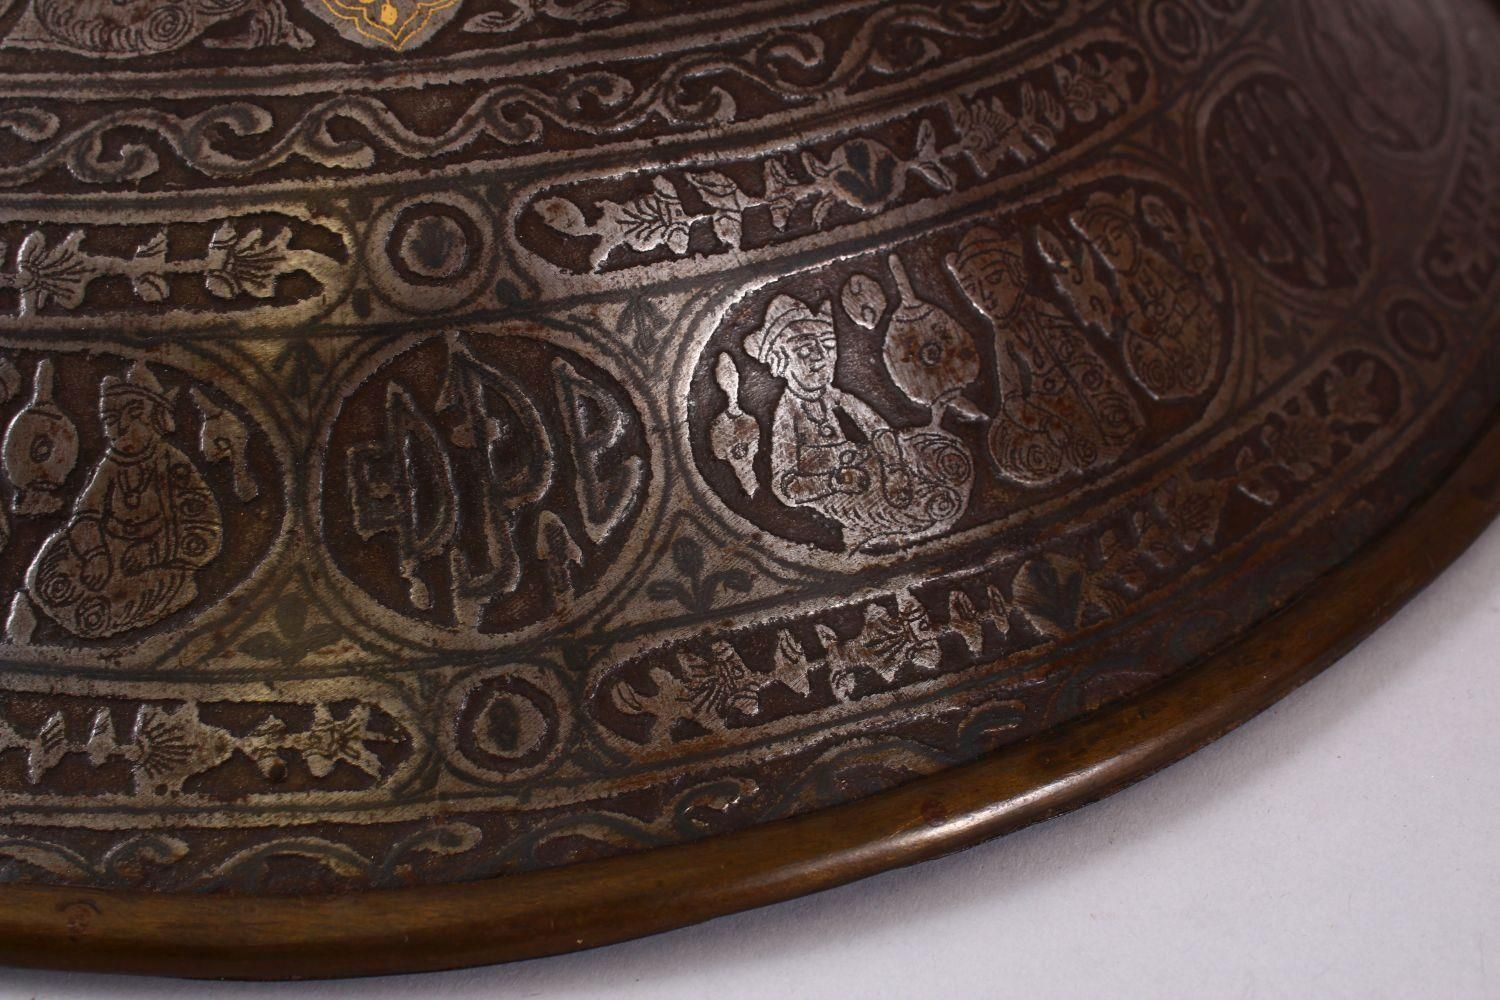 A LARGE 19TH CENTURY PERSIAN GILT DECORATED STEEL SHIELD, with carved decoration of figures, bands - Image 9 of 12